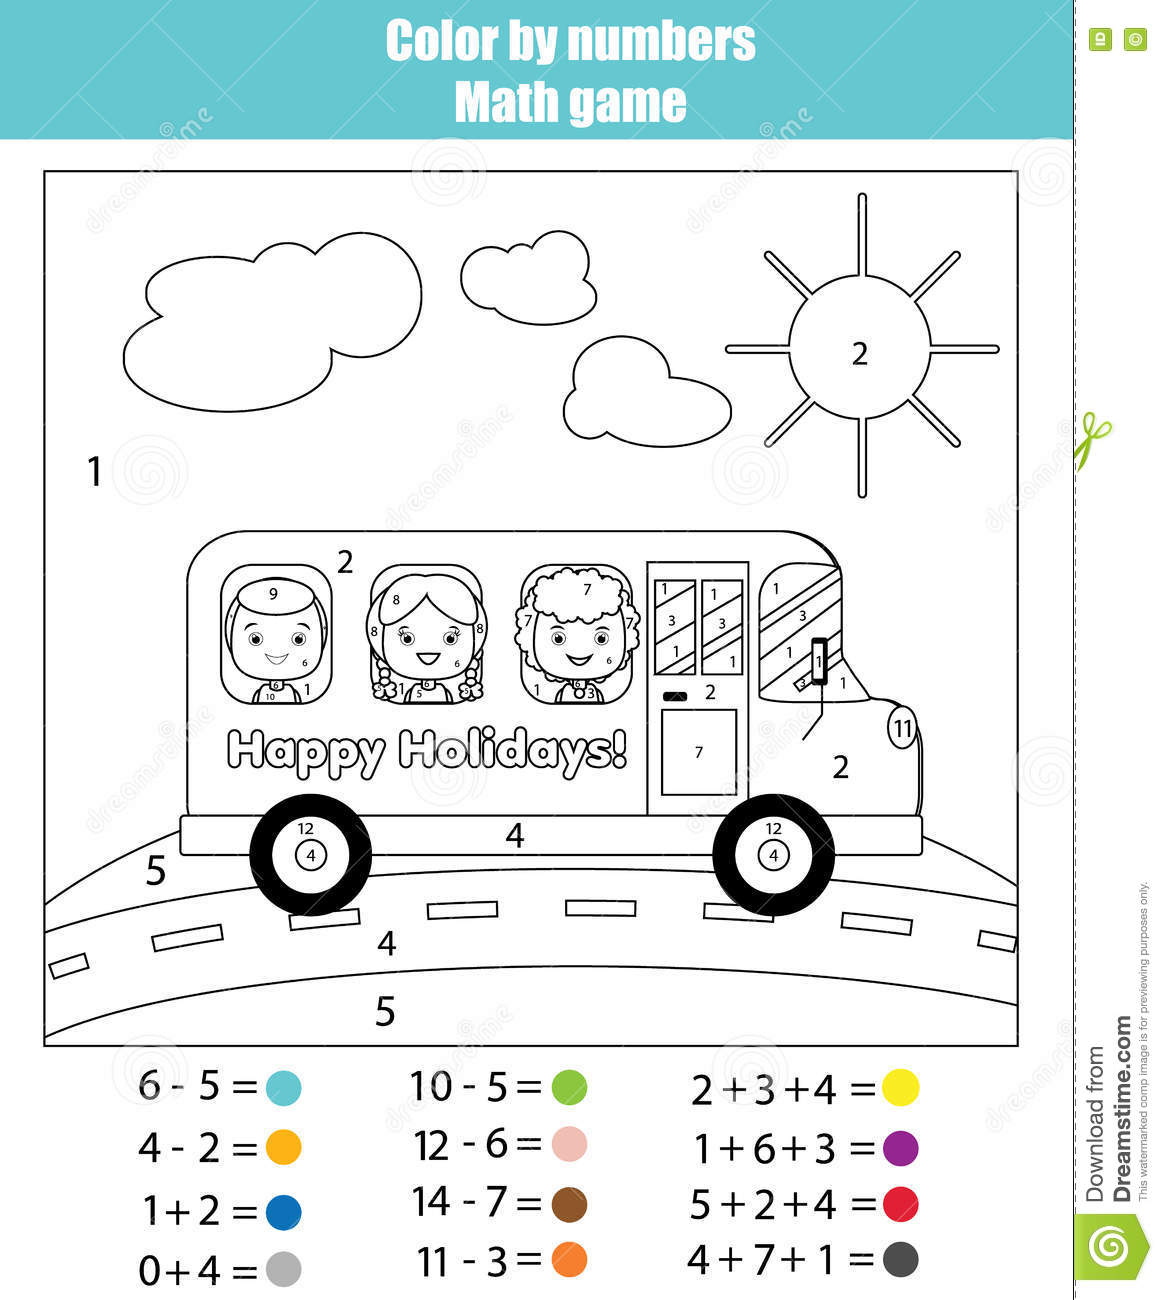 Coloring Page With Kids In School Bus. Color By Numbers Math Game ...